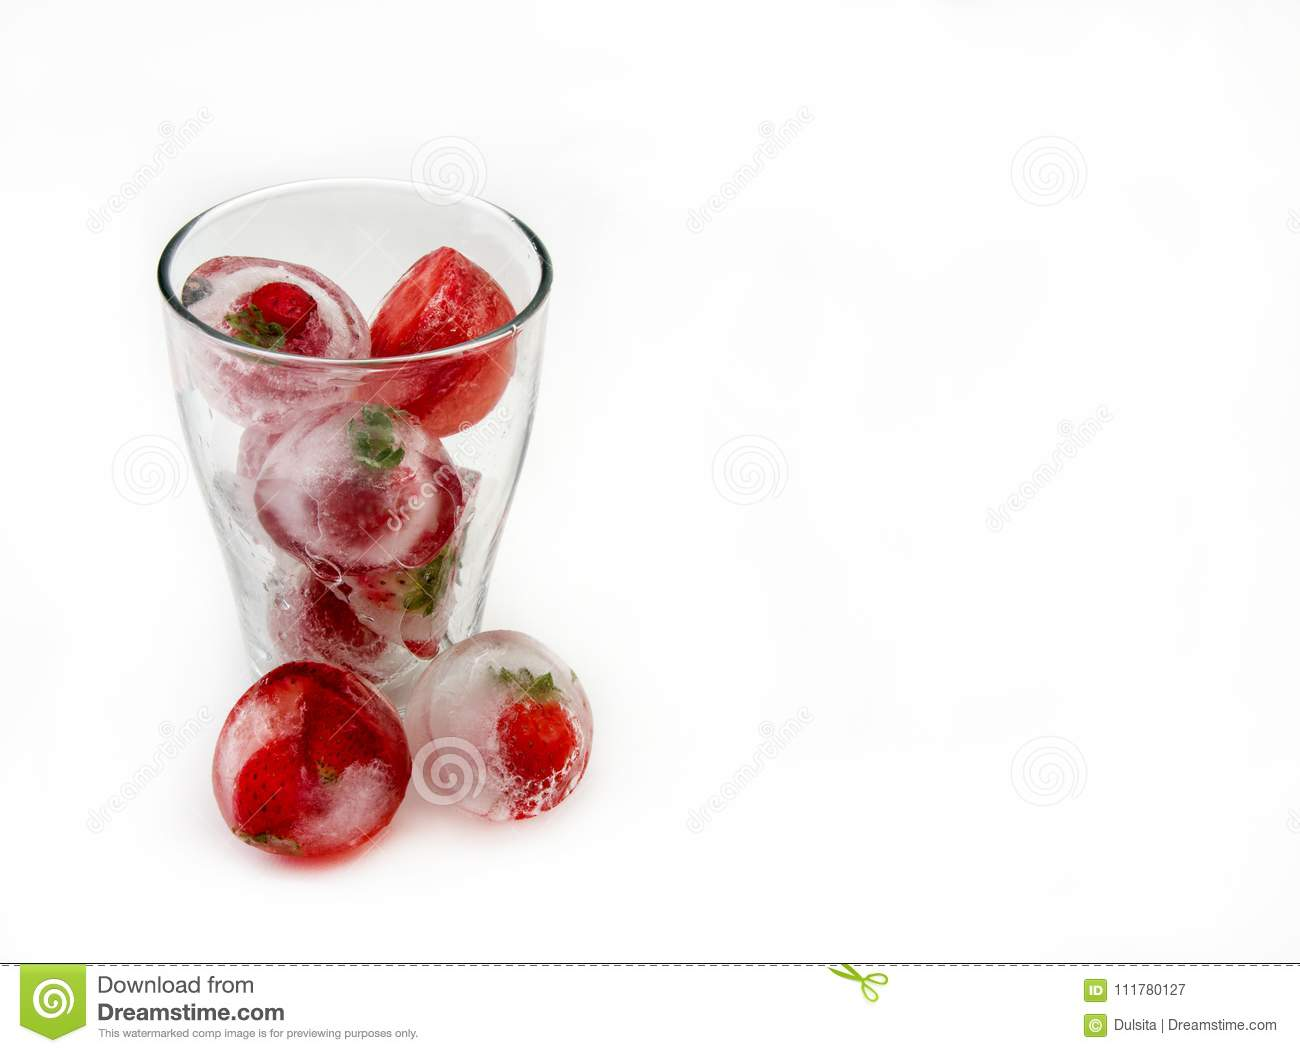 Ice cubes with strawberries